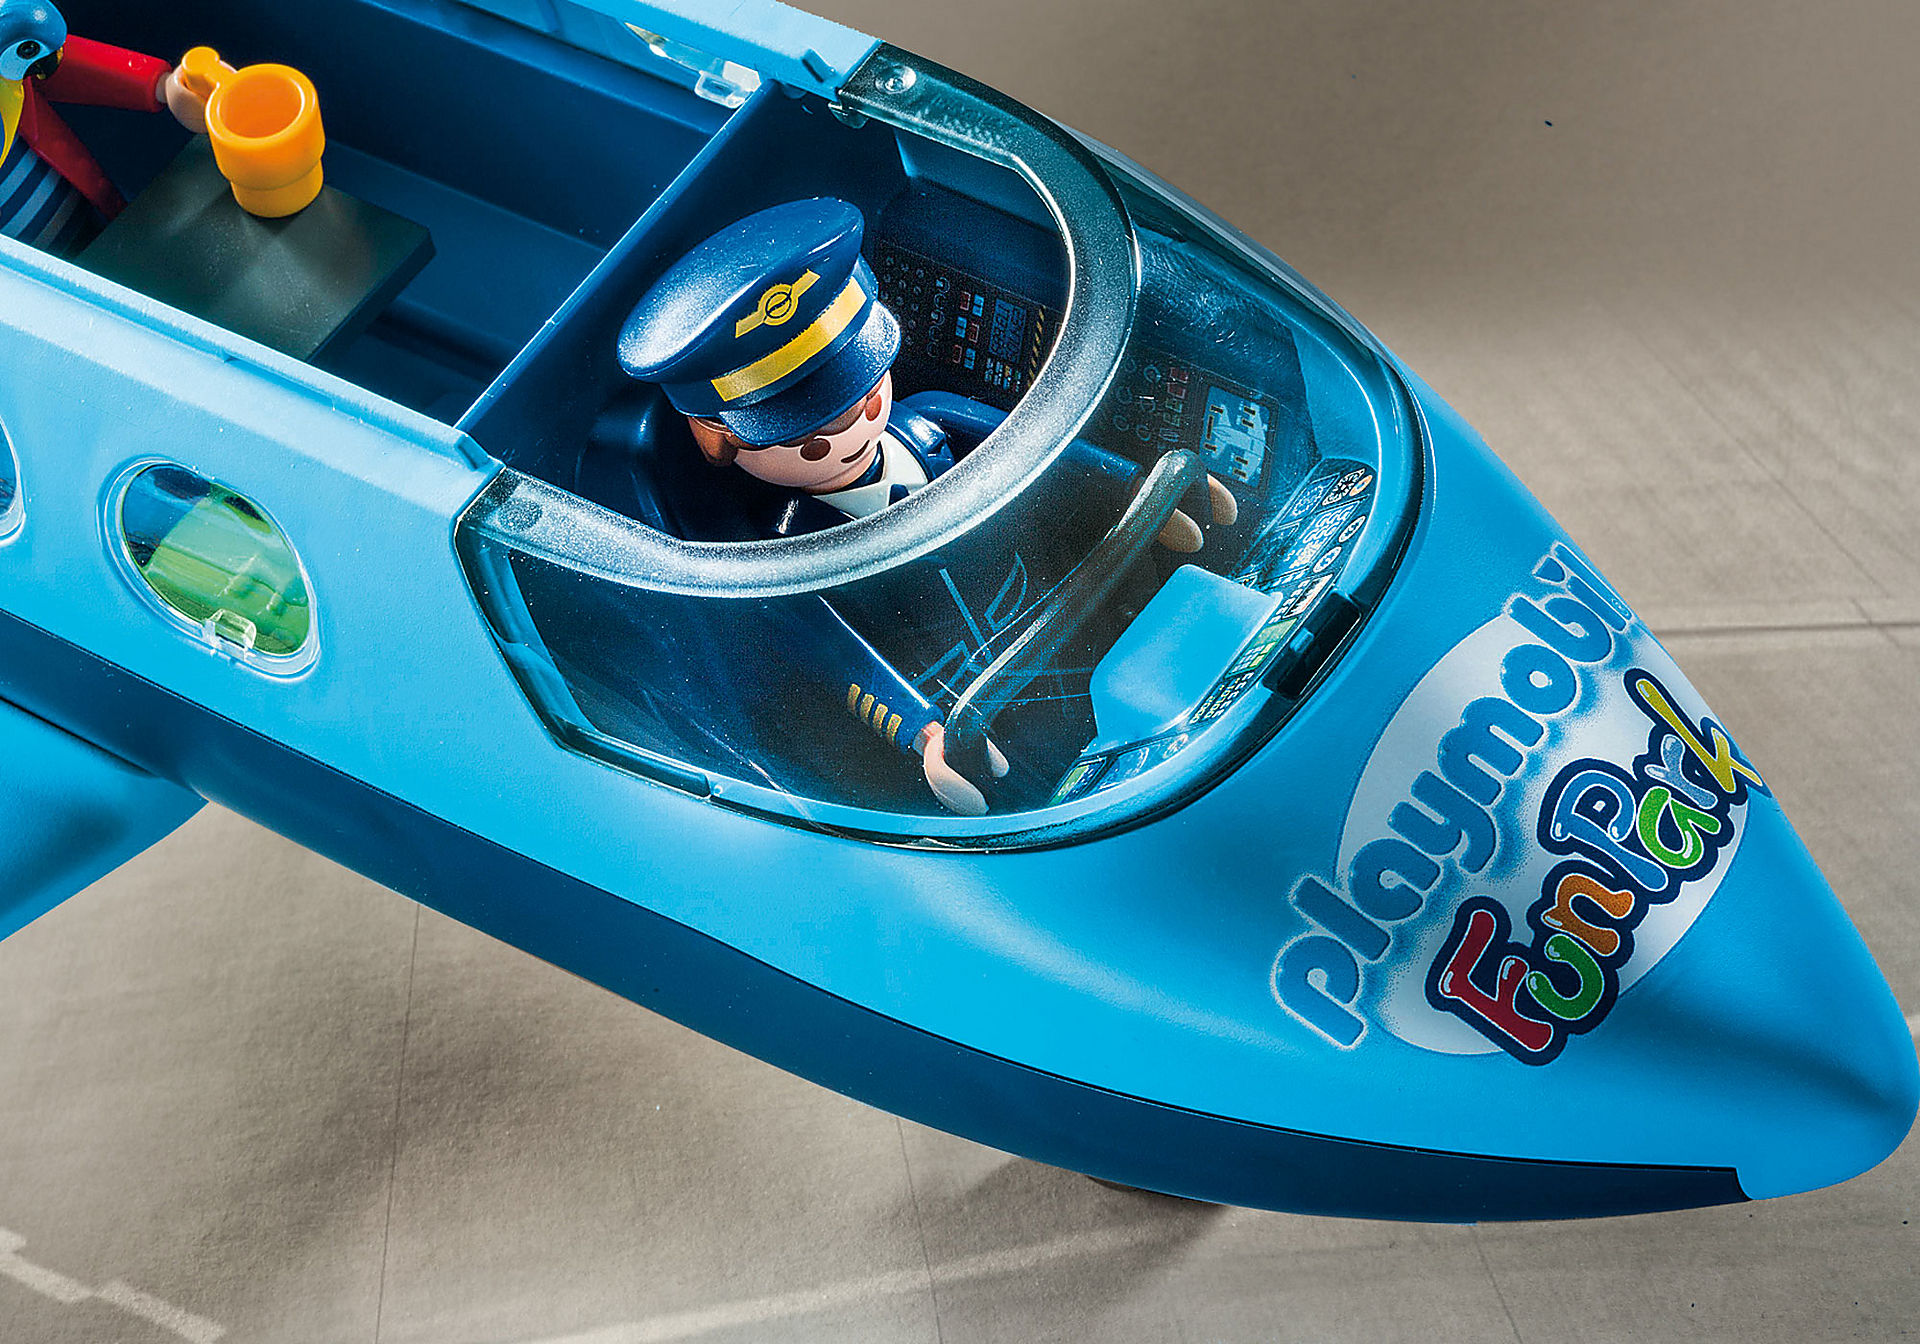 9366 PLAYMOBIL-FunPark Summer Jet zoom image6